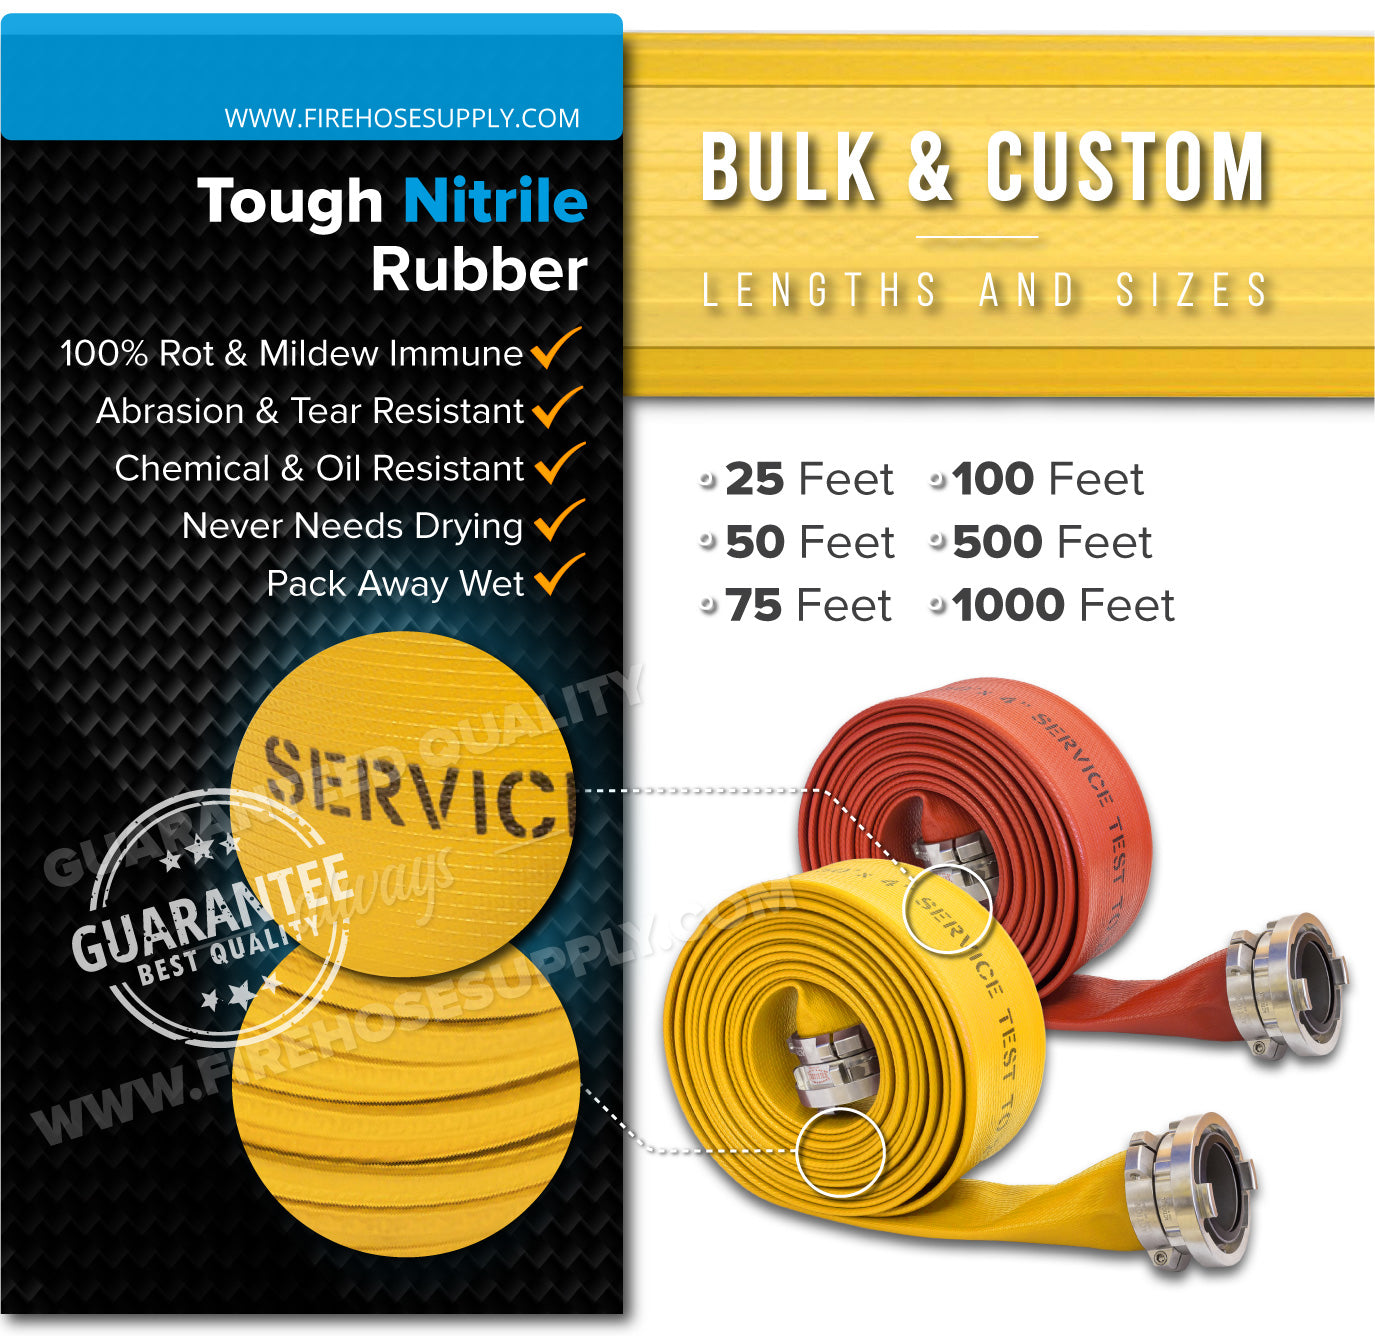 4 Inch Fire Hose Rubber Durable Nitrile Material